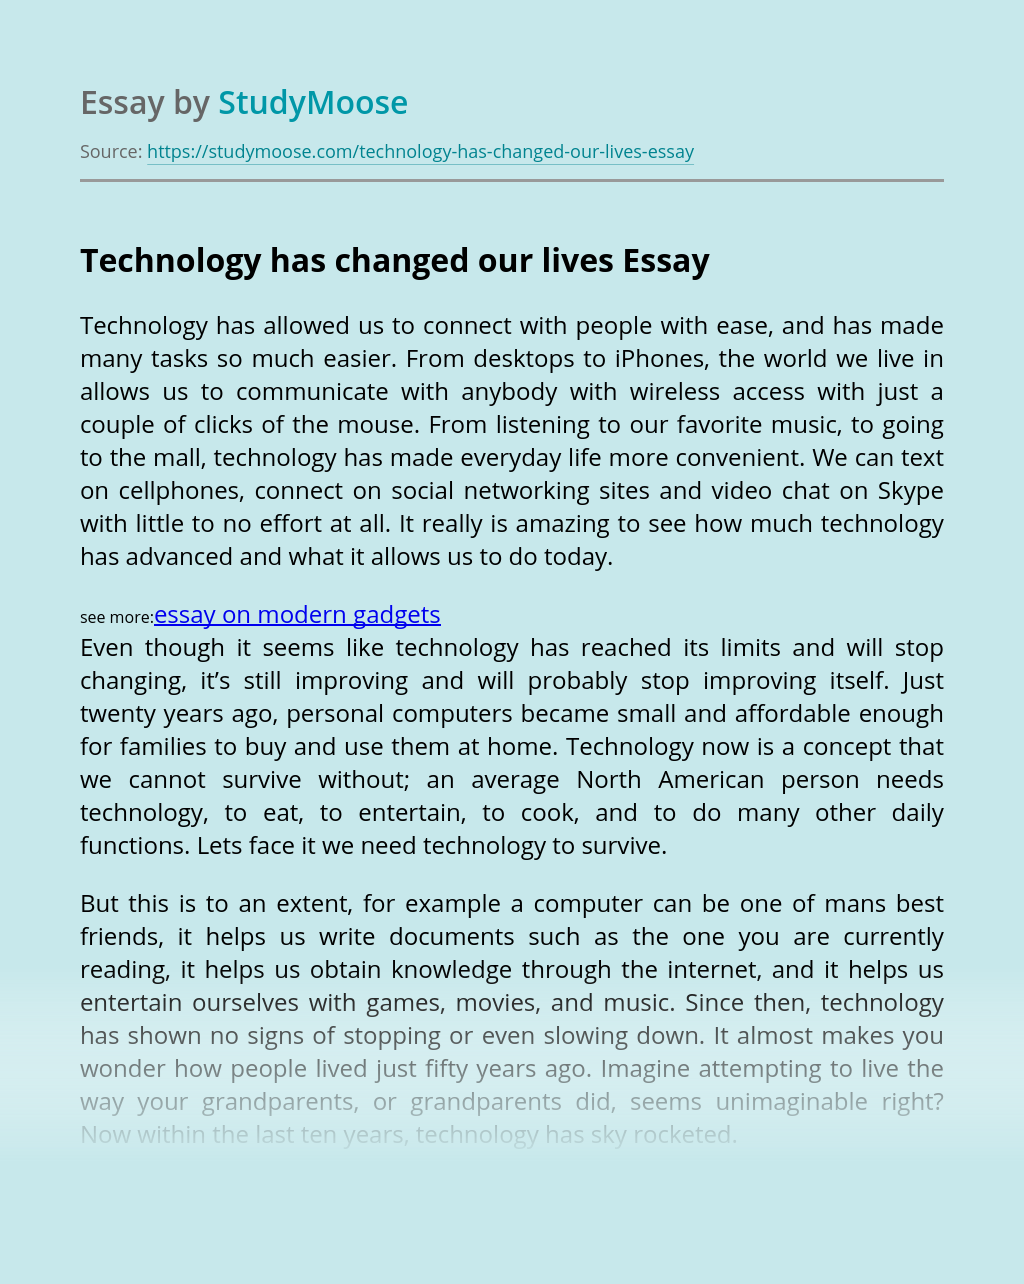 Technology has changed our lives